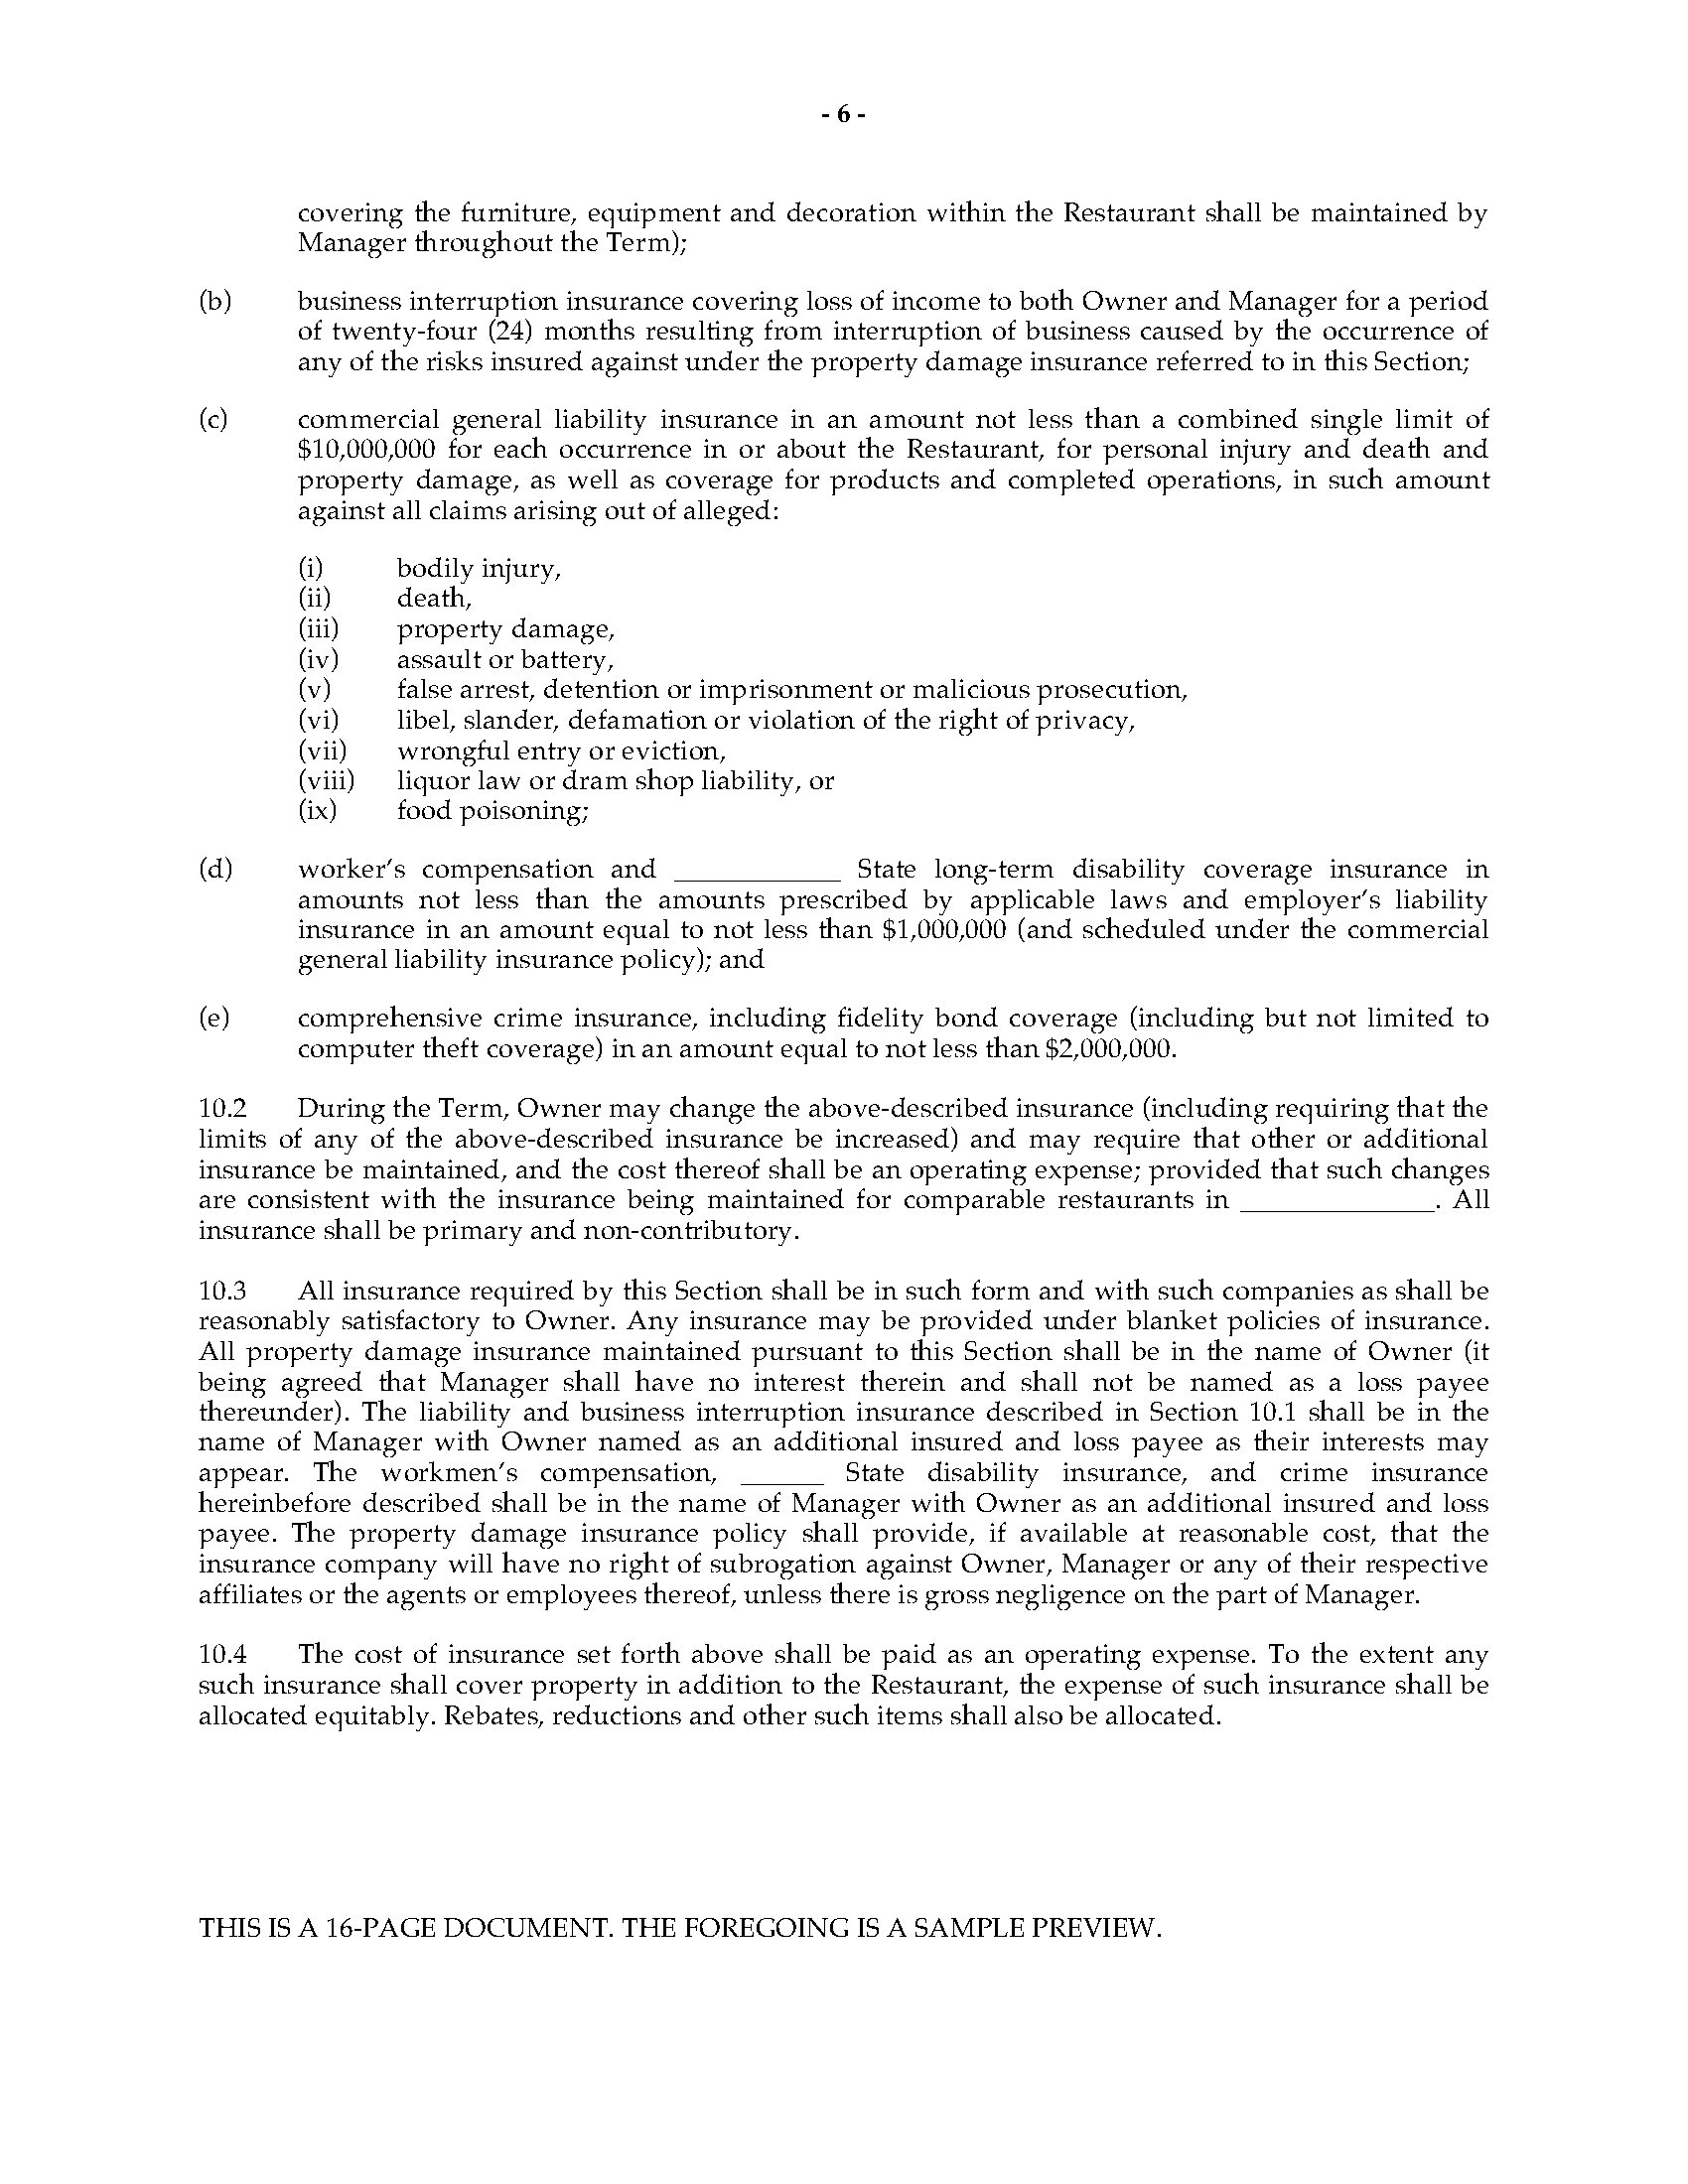 Restaurant management agreement legal forms and business templates picture of restaurant management agreement platinumwayz